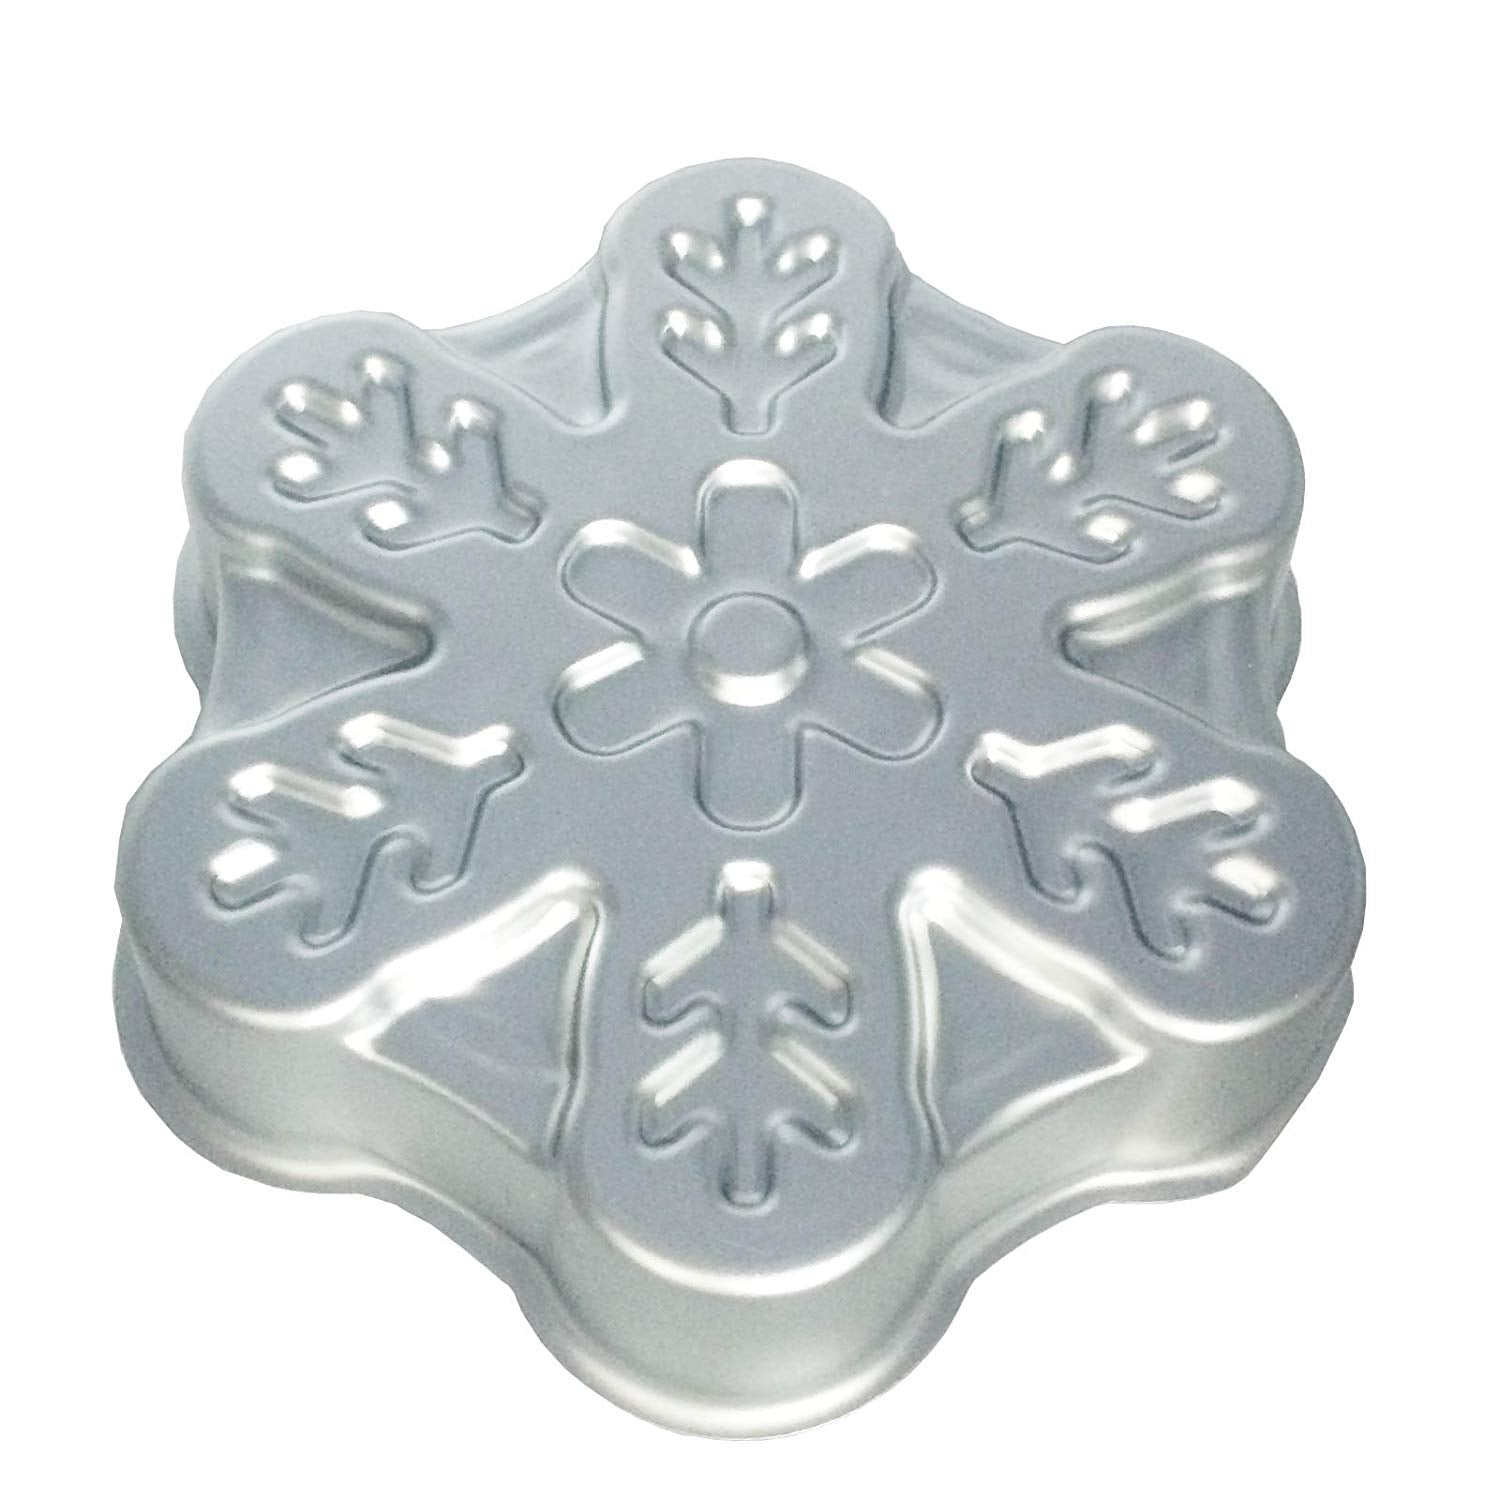 Large Snowflake Metal Baking Pan 8.9inch